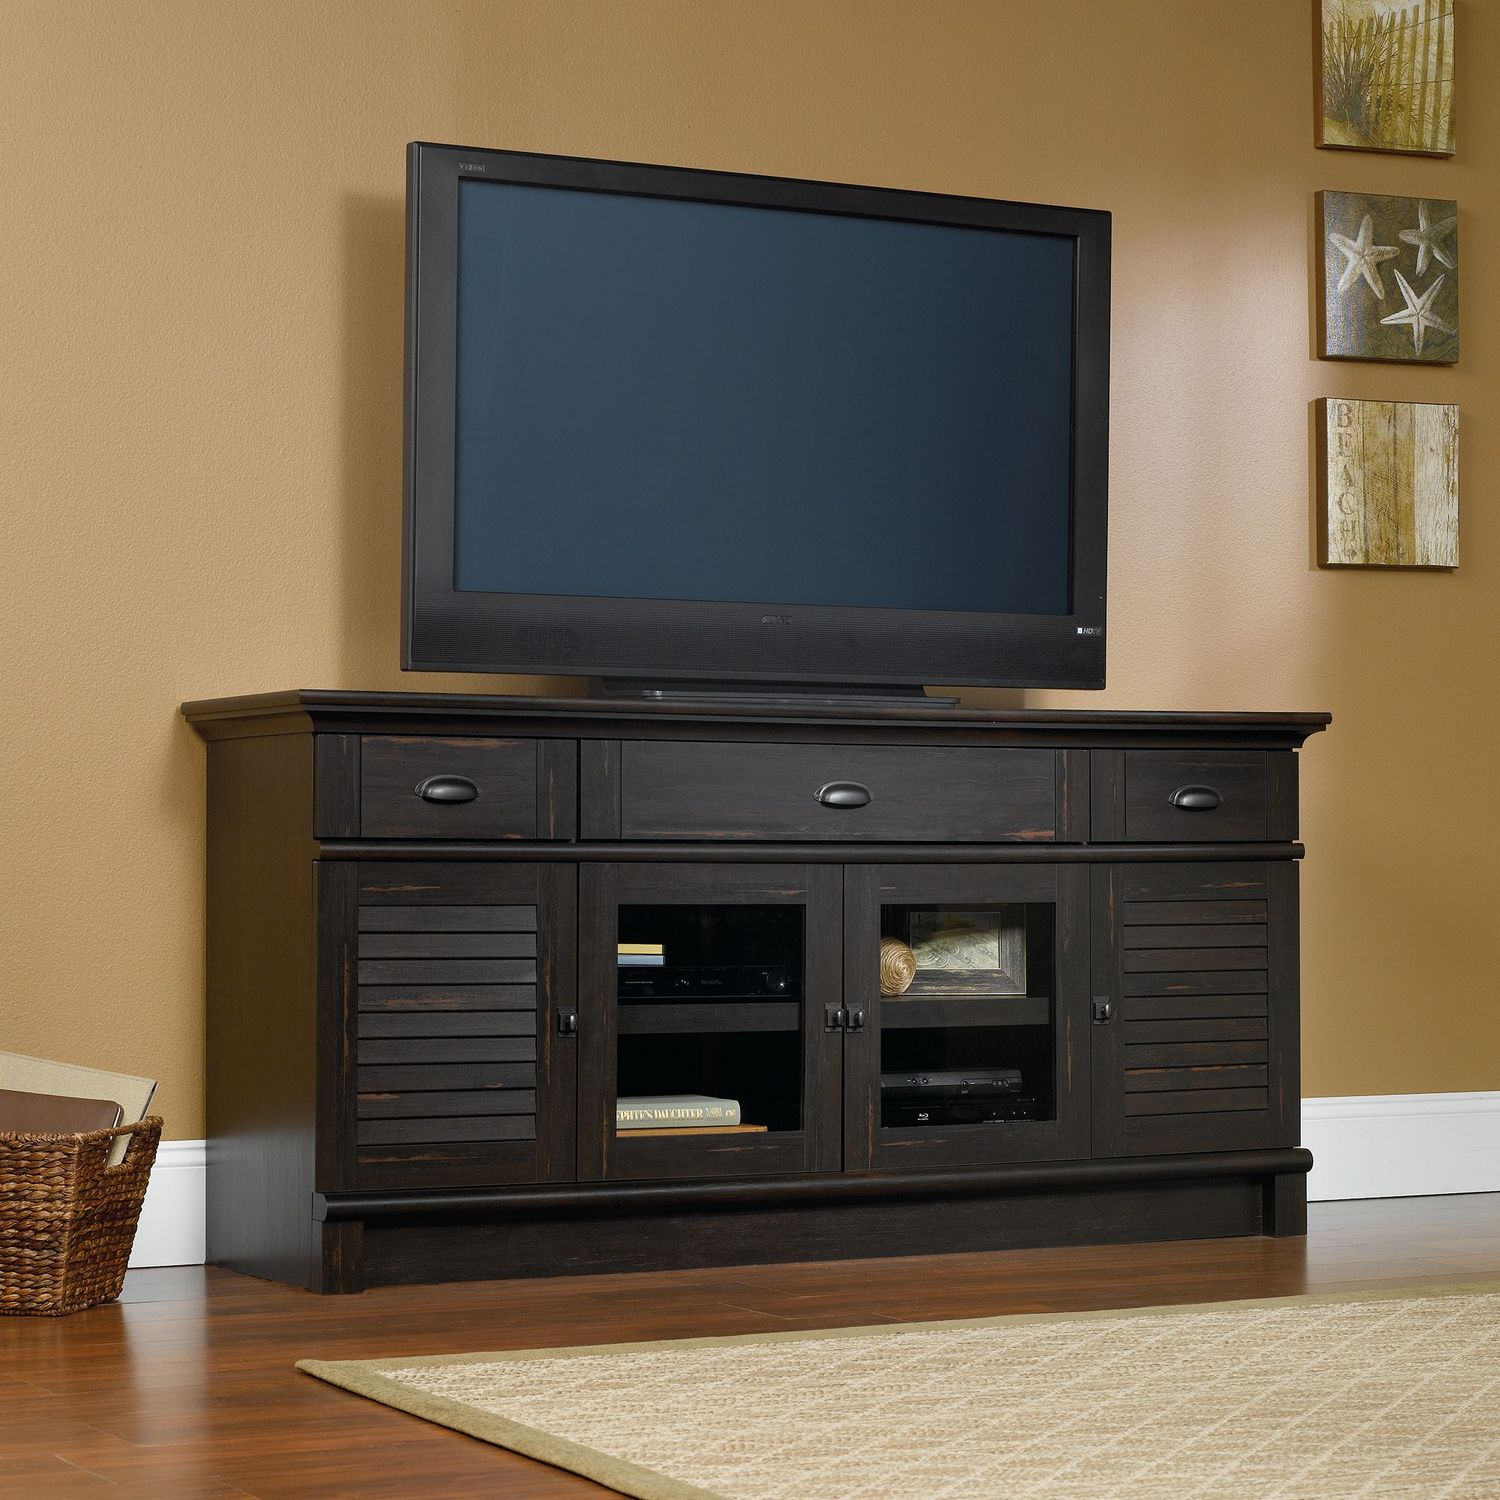 "Harbor View 71"" TV Stand - Antique Brown"